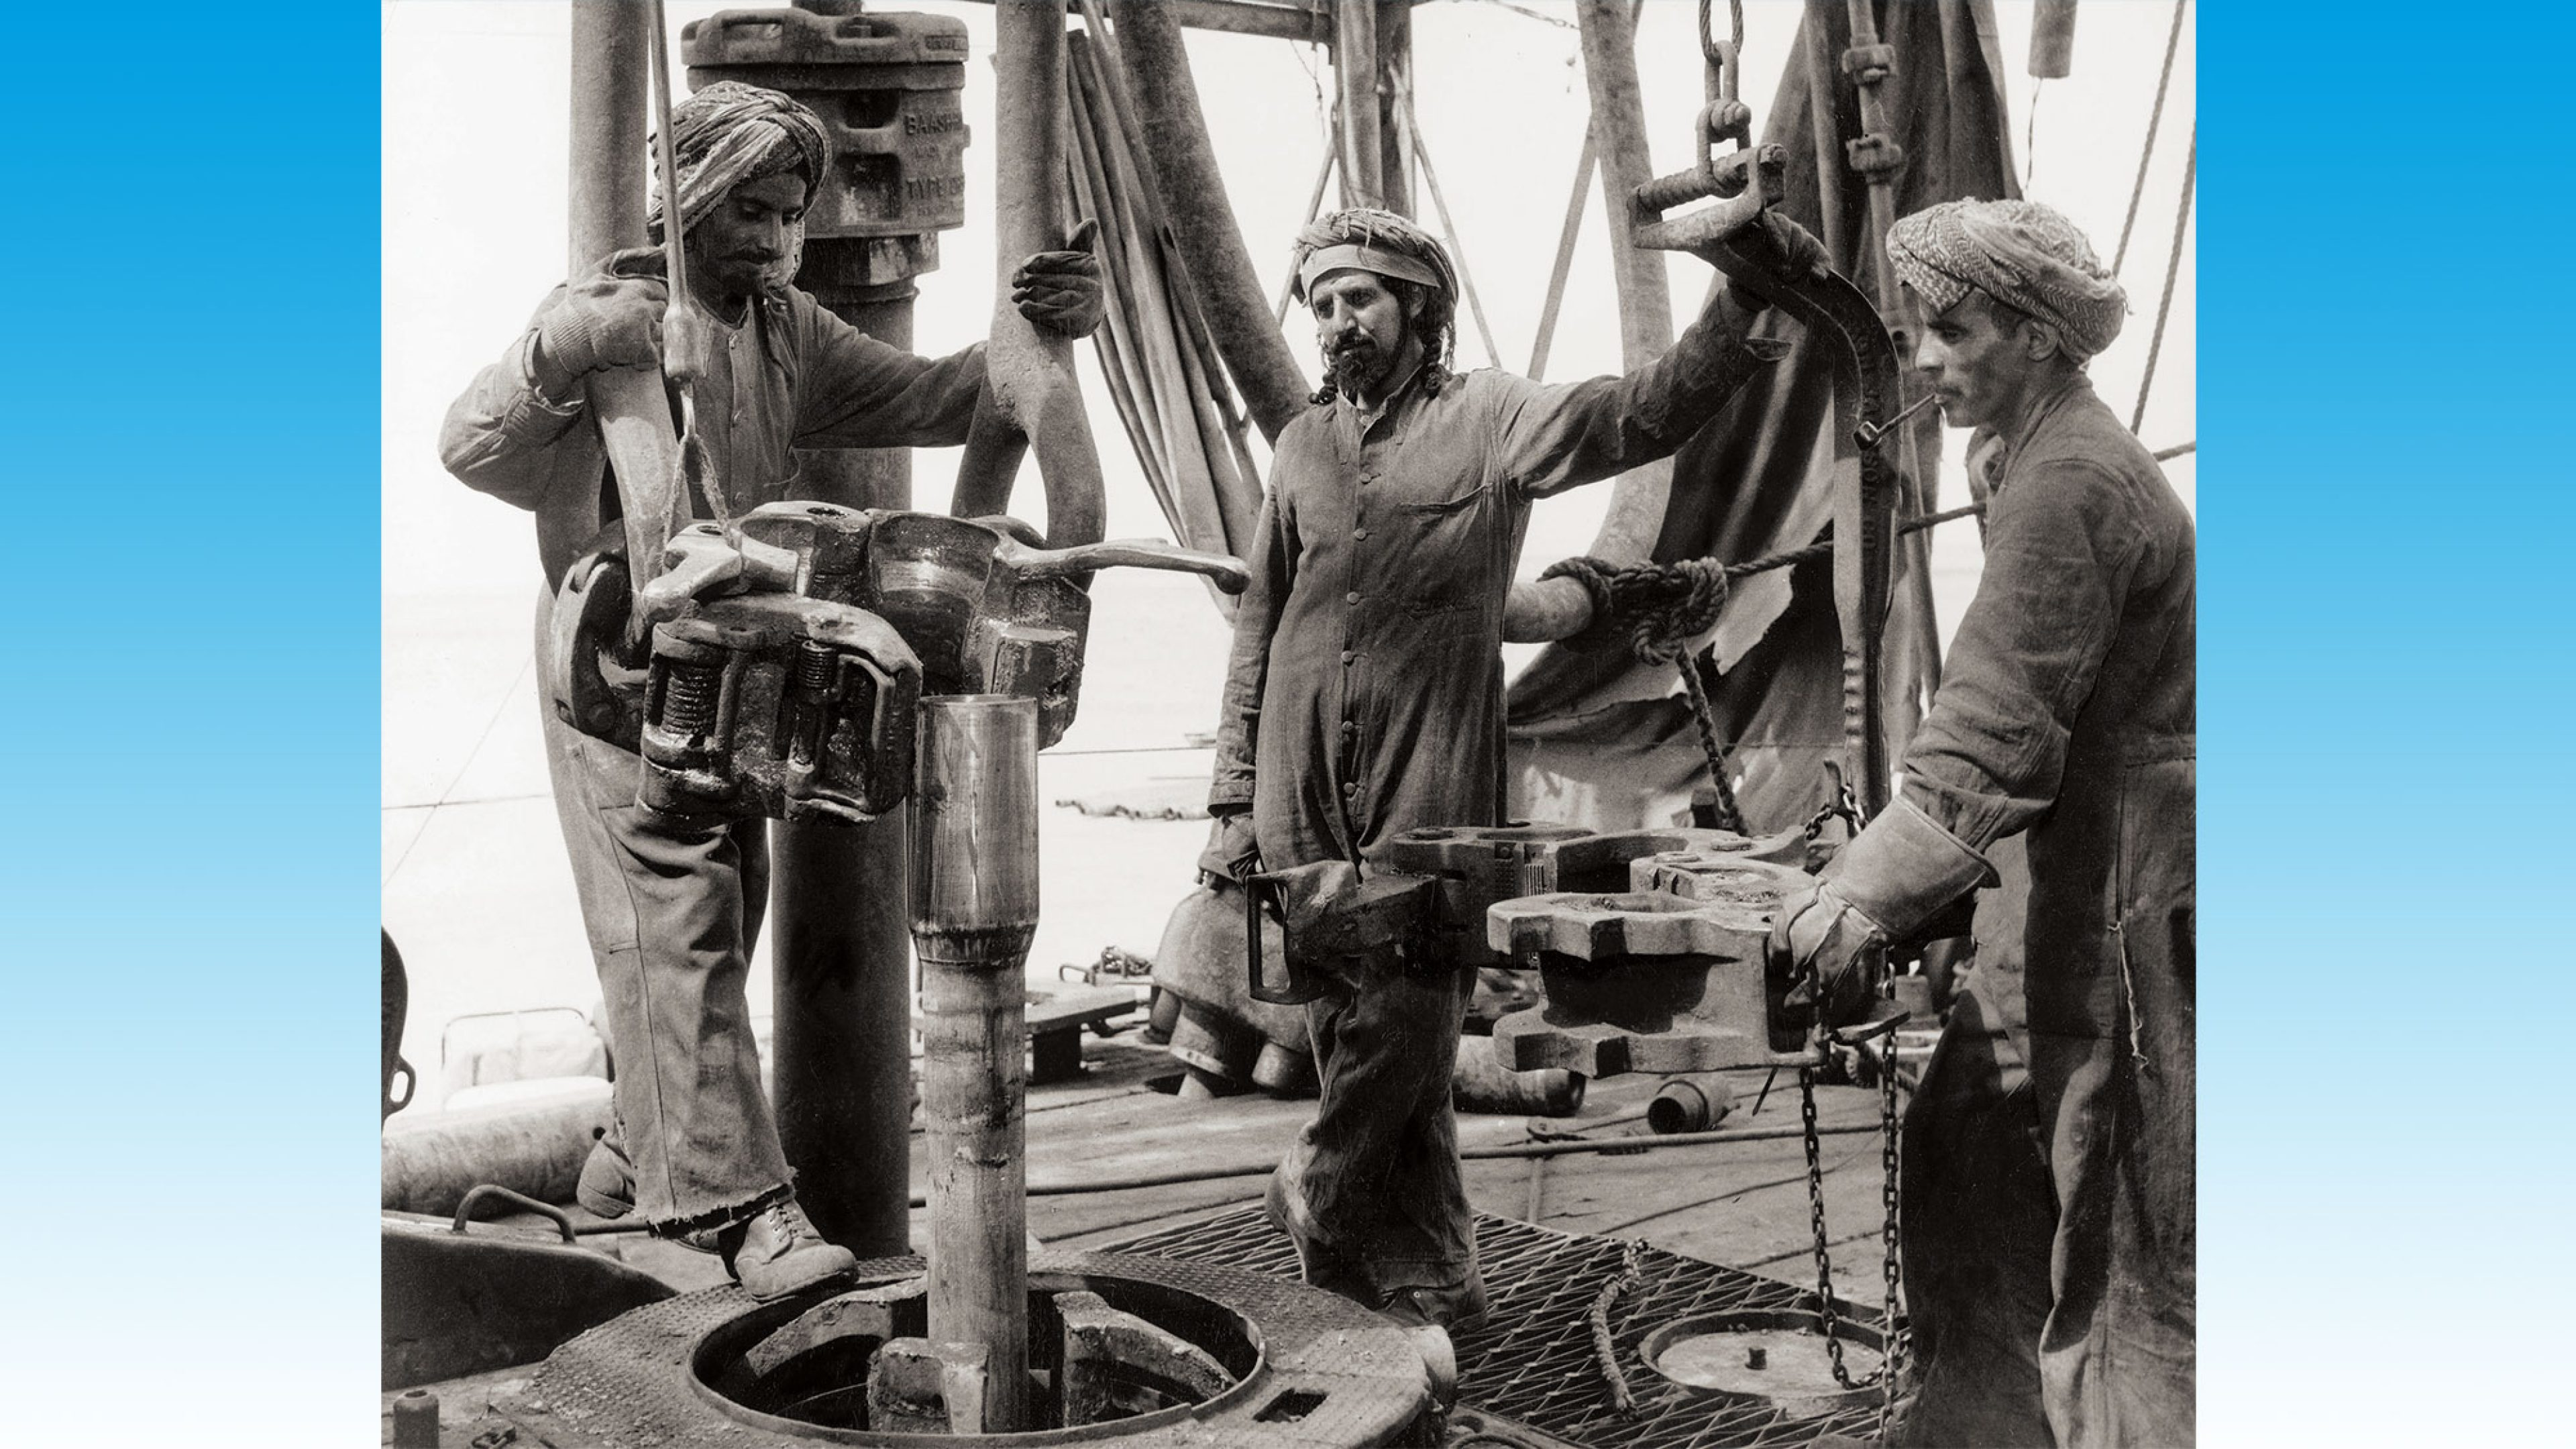 Kuwaiti rigmen preparing to run the drillpipe in 1956